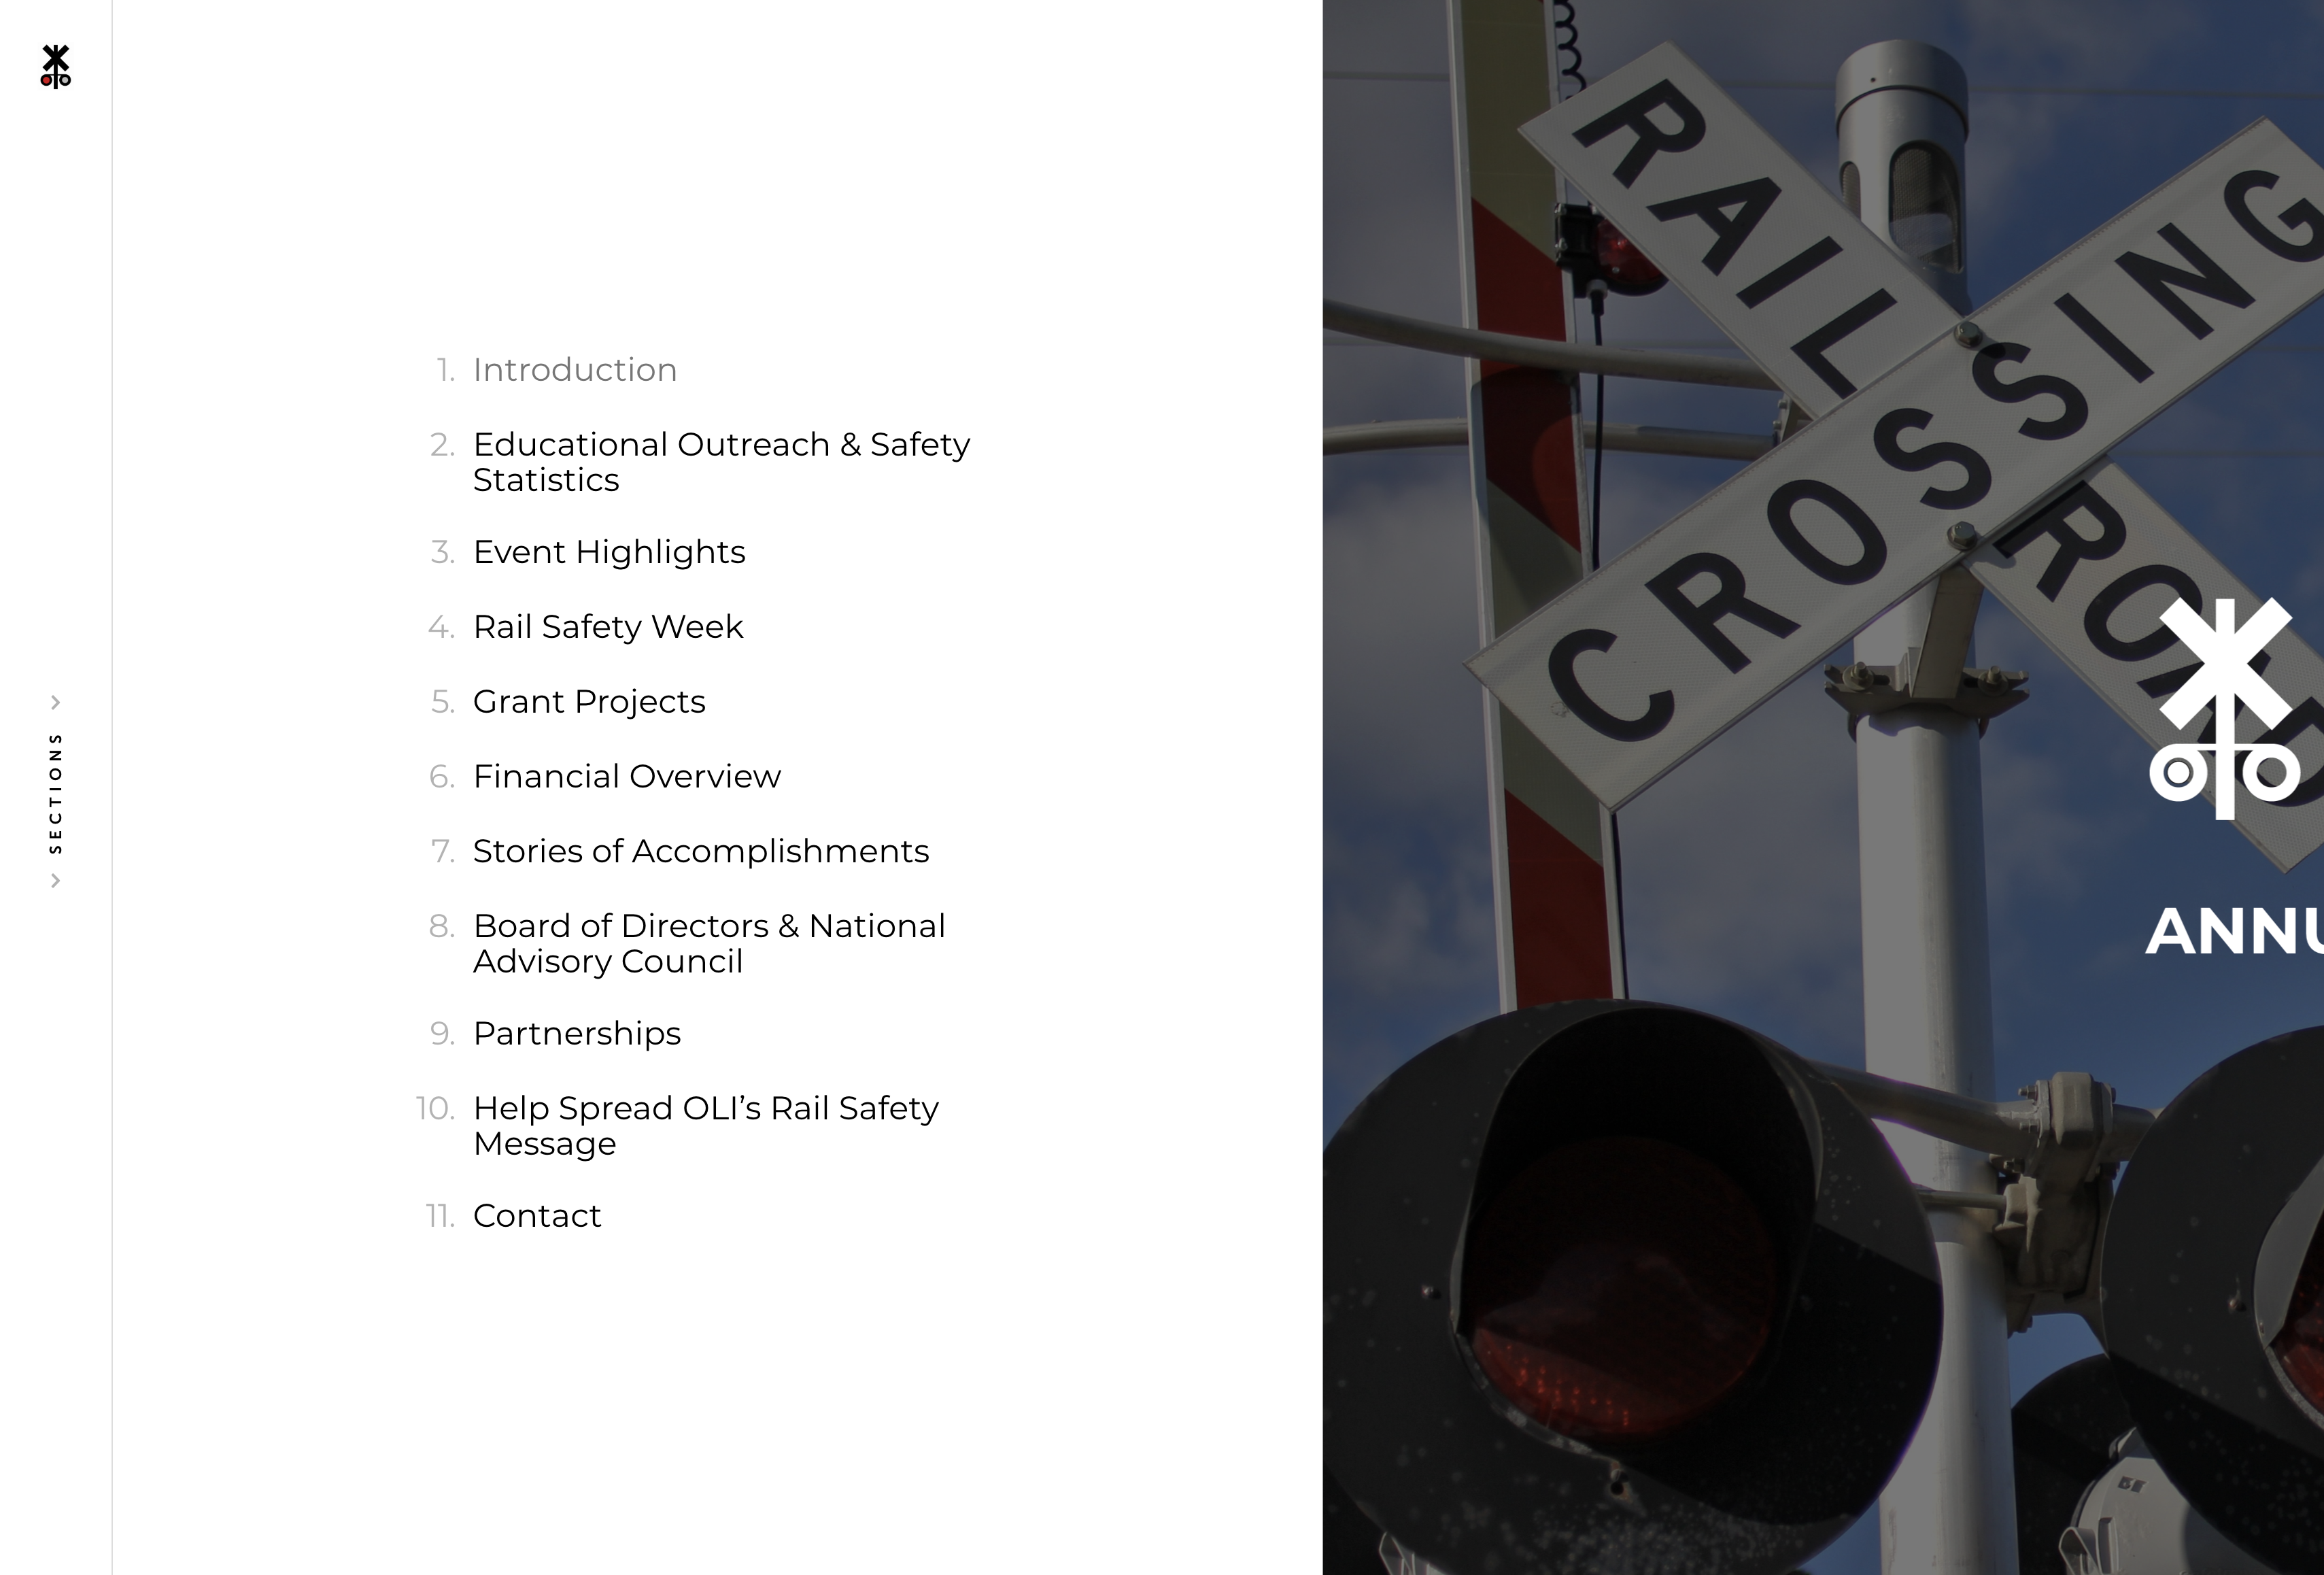 Screenshot of the digital menu in Operation Lifesaver, Inc.'s annual report. The left side is a table of content in black text on white and the right side is a picture of a railroad crossing sign.